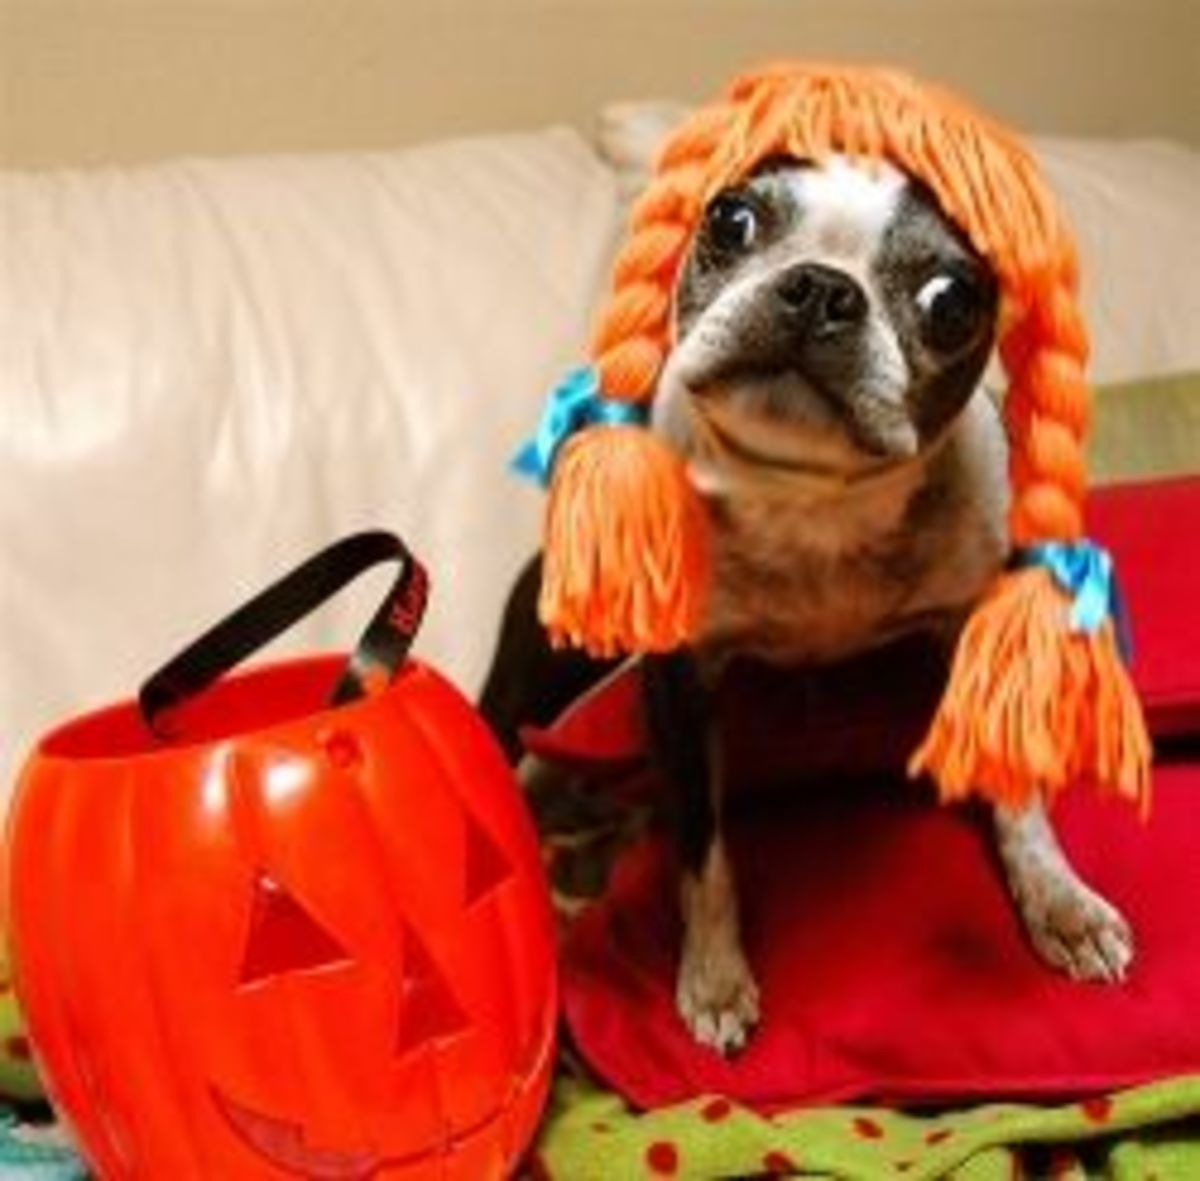 Halloween Dog photo by Don Hankins used under CC 2.0